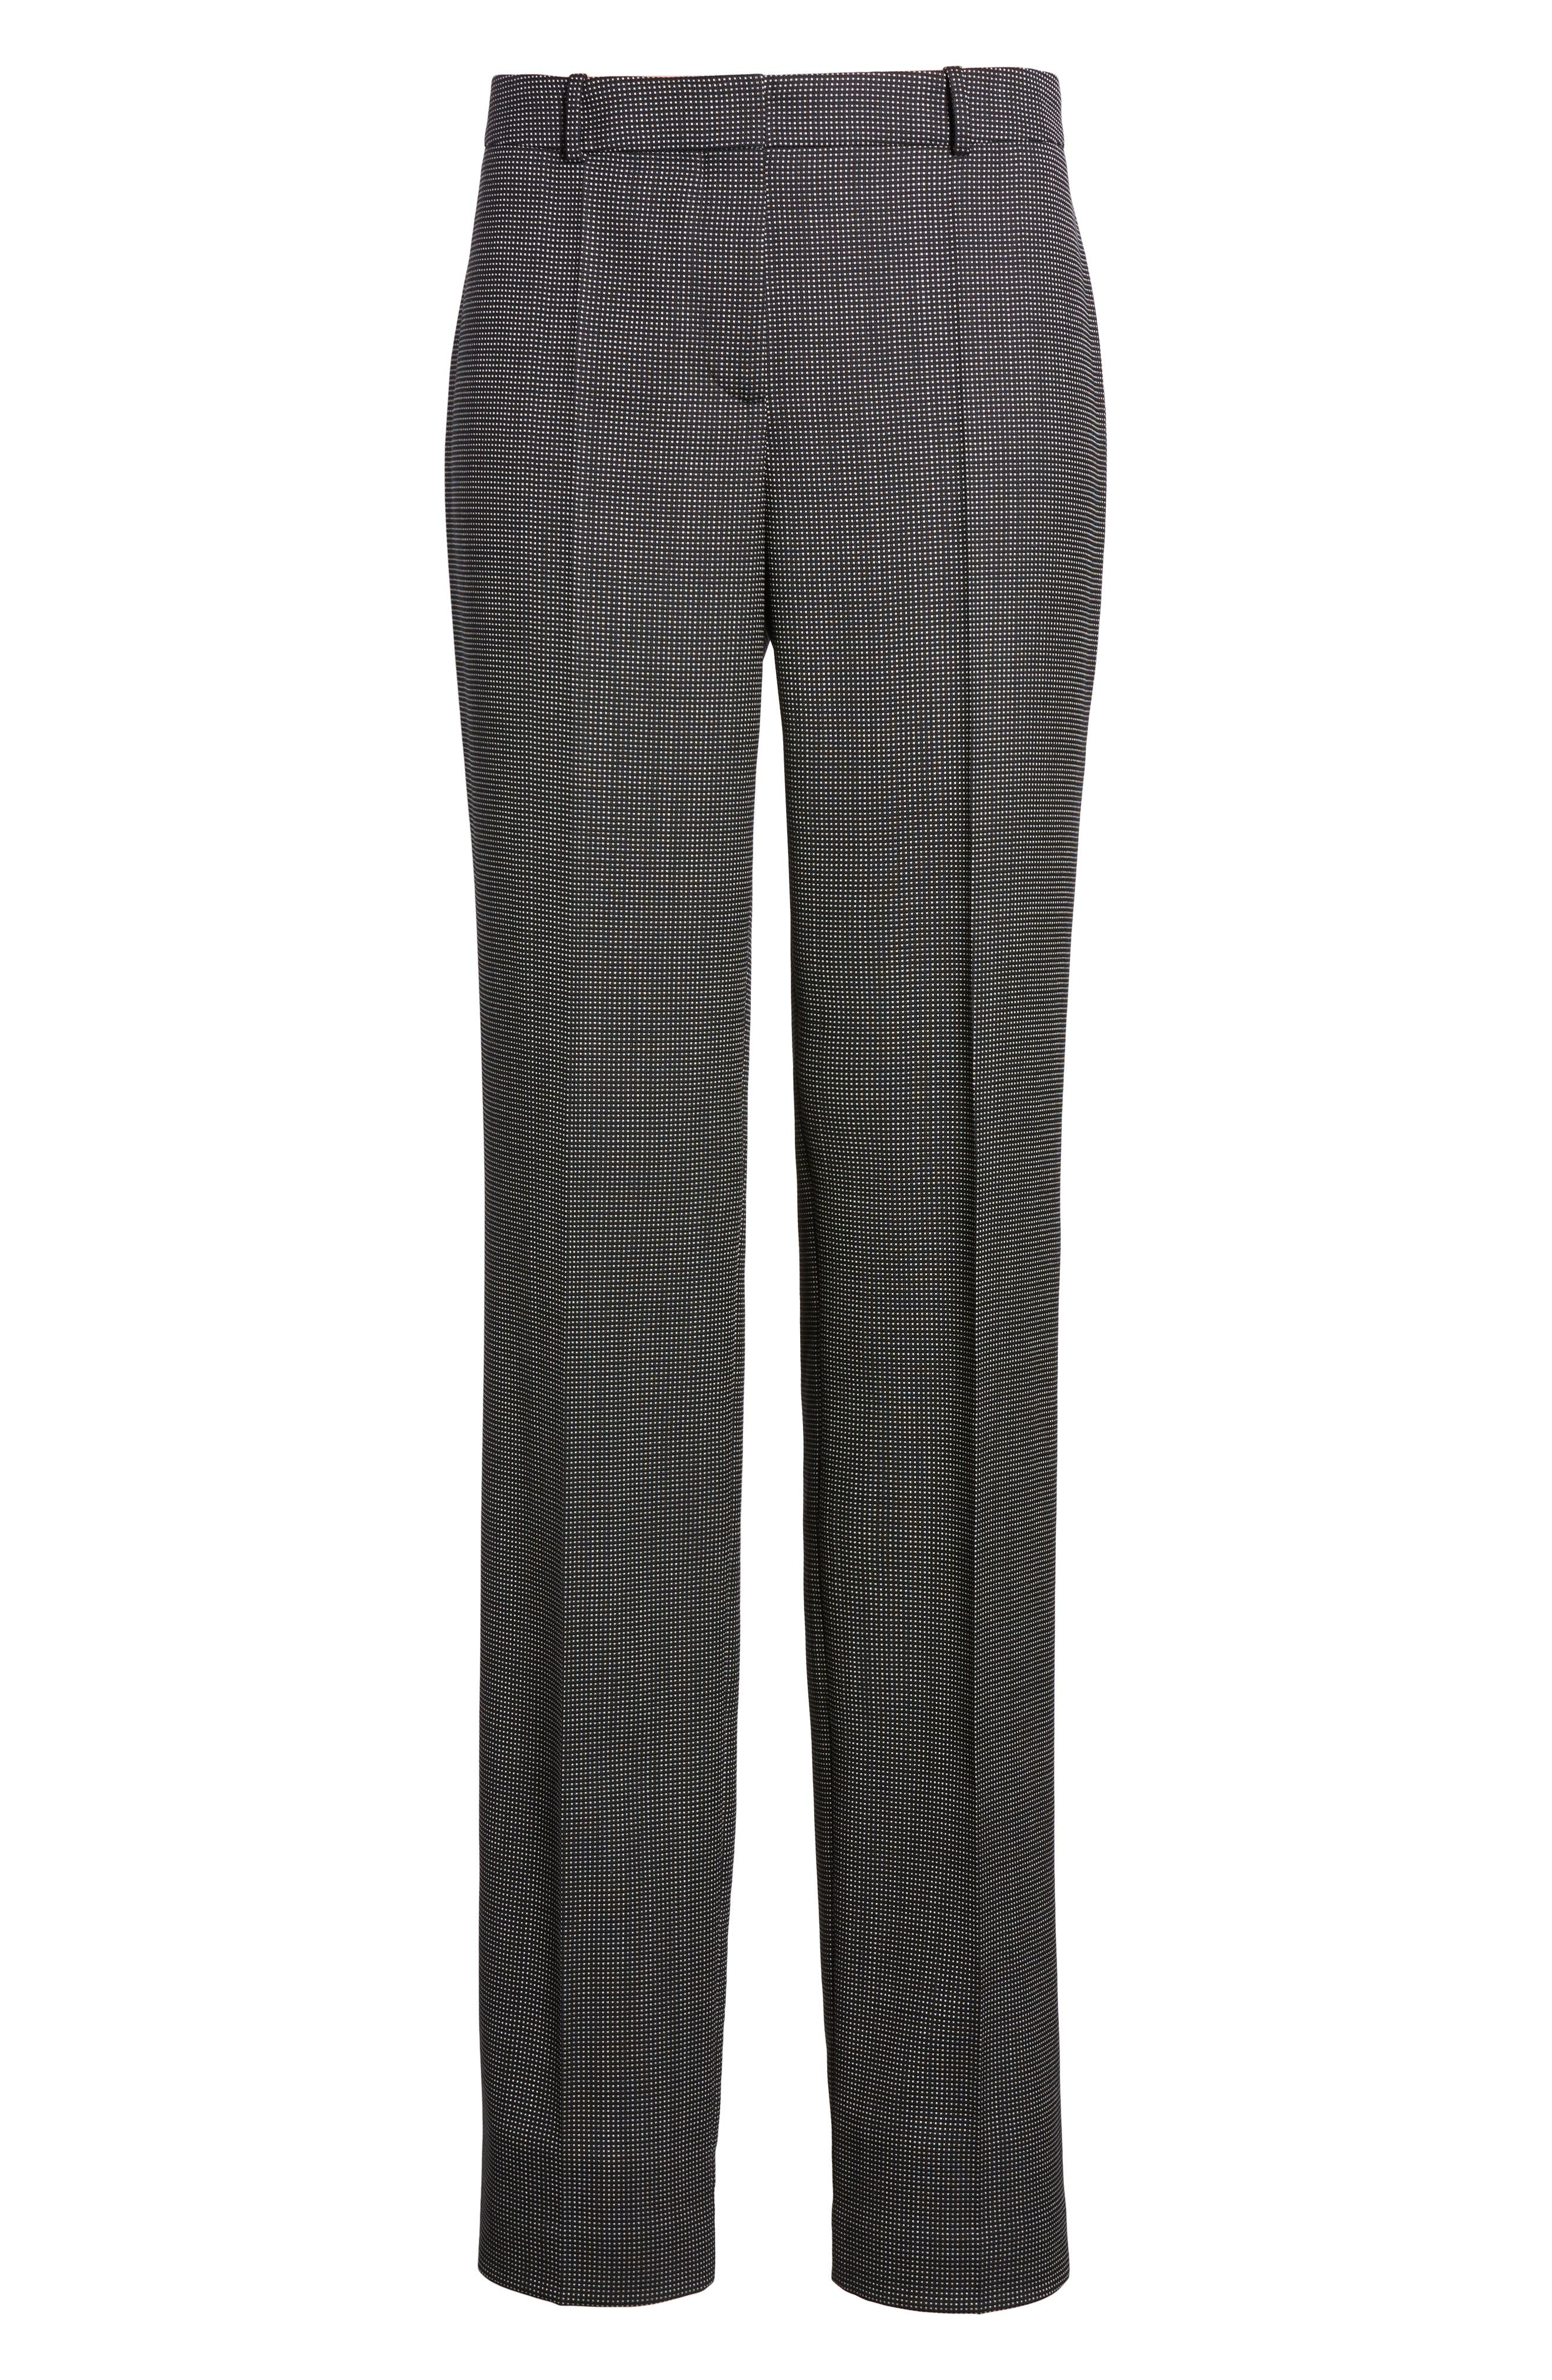 Tamea Straight Leg Stretch Wool Suit Pants,                             Alternate thumbnail 6, color,                             Black Fantasy